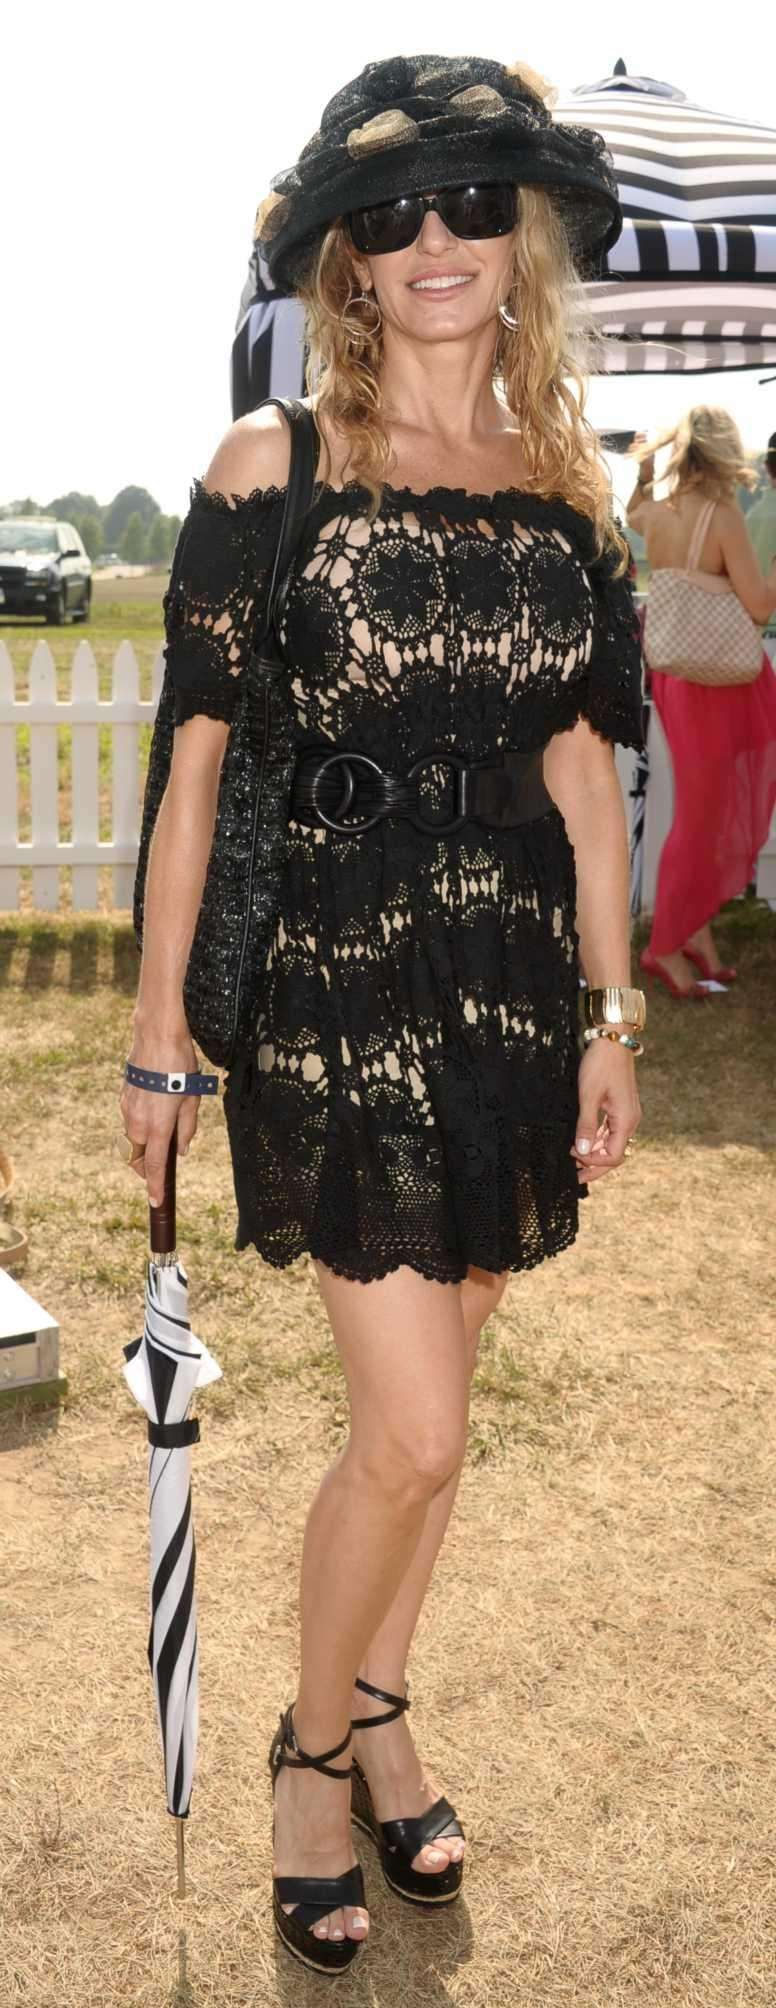 Thereza Romanelli attends the 17th Annual Bridgehampton Polo